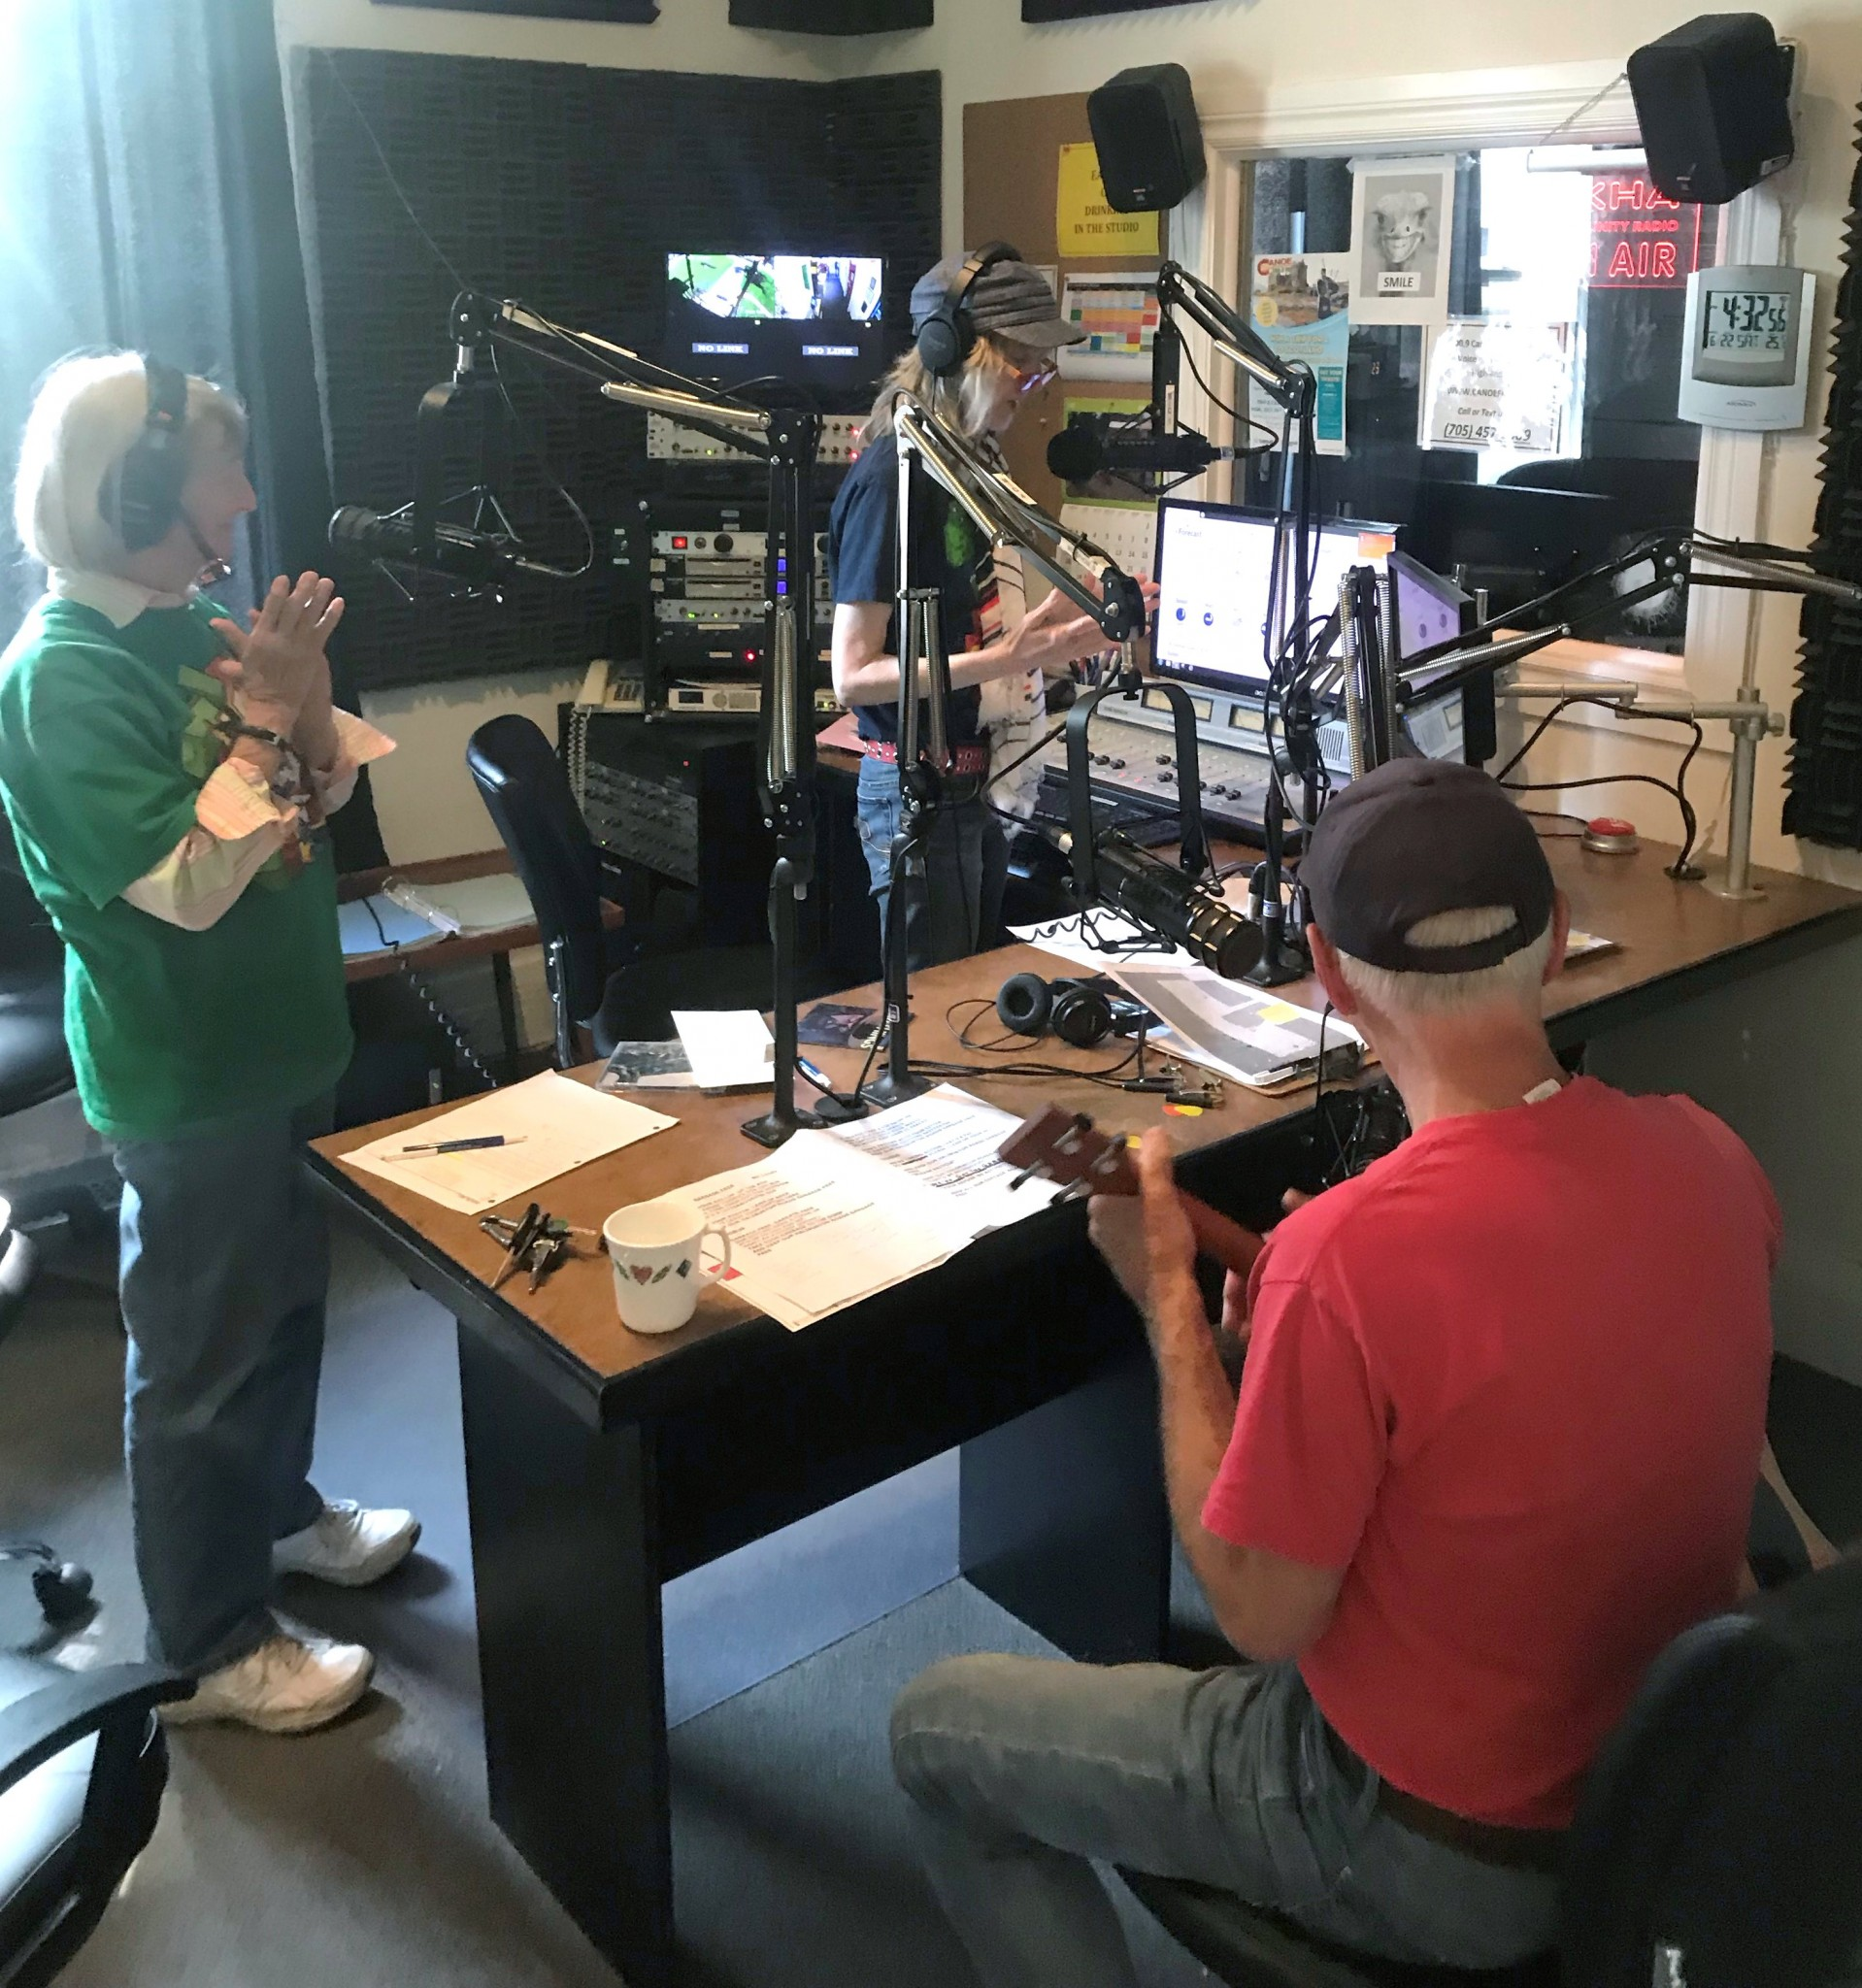 Bill Candy dropped into the Canoe FM studio to play some tunes on air.